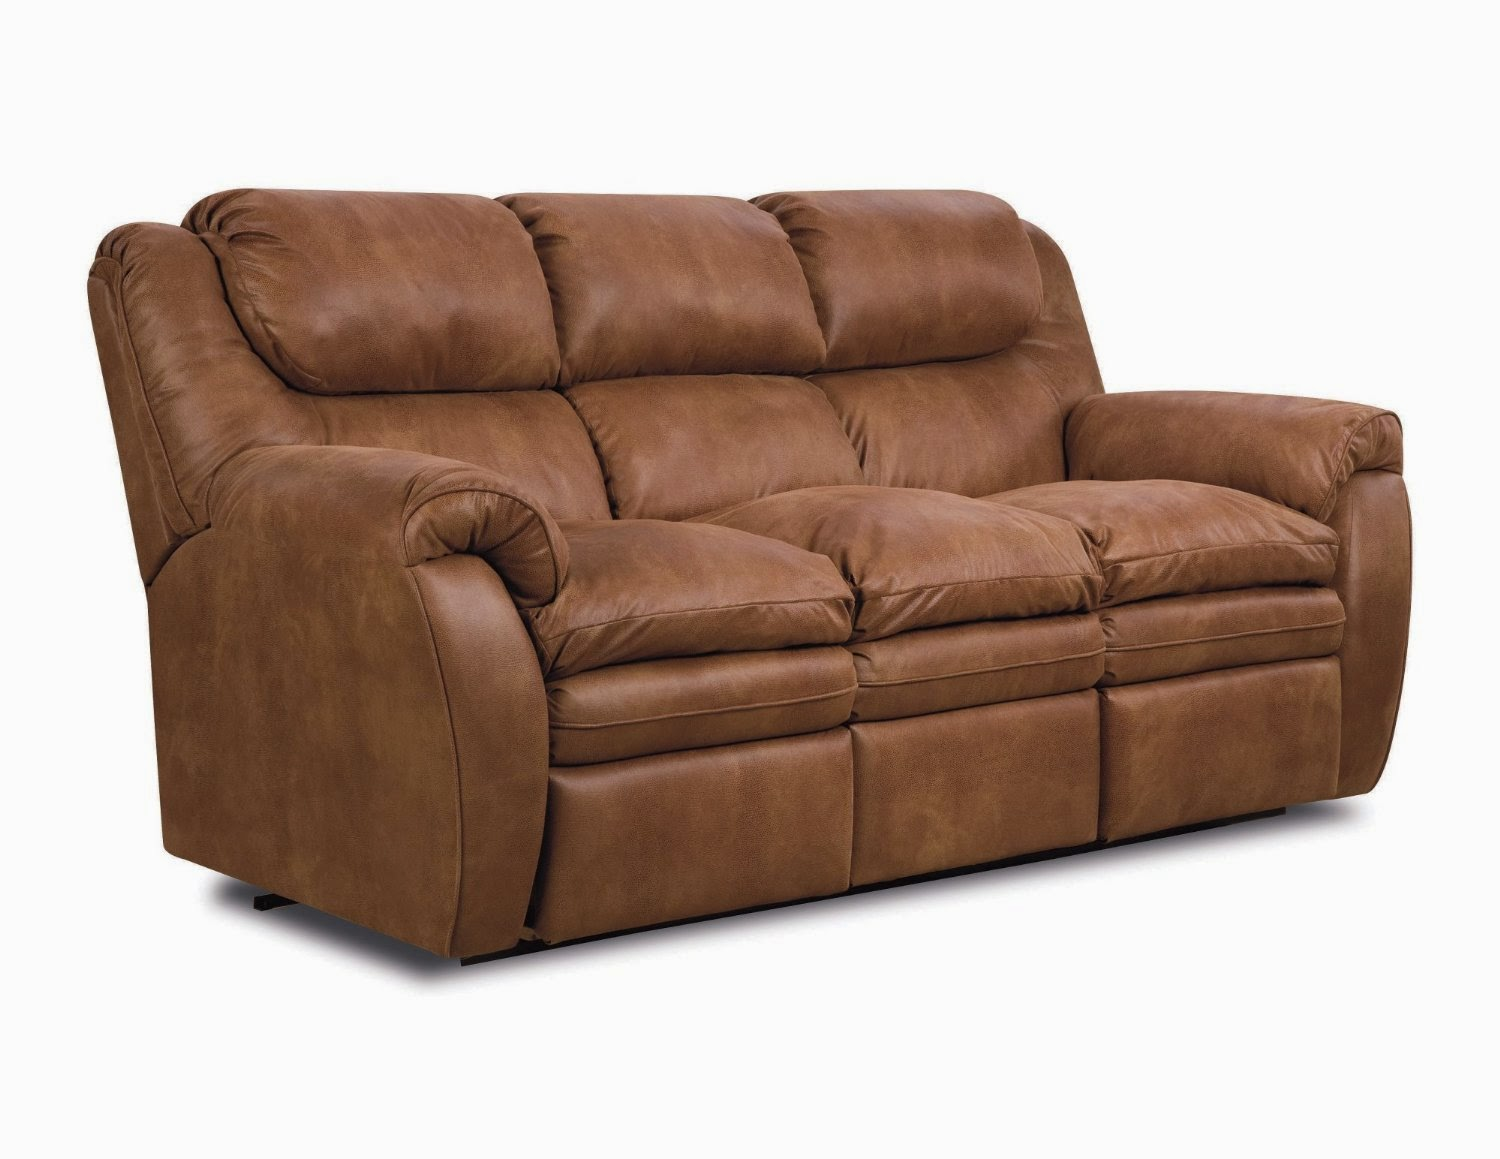 Reclining sofas for sale lane hendrix reclining sofa reviews Loveseats that recline